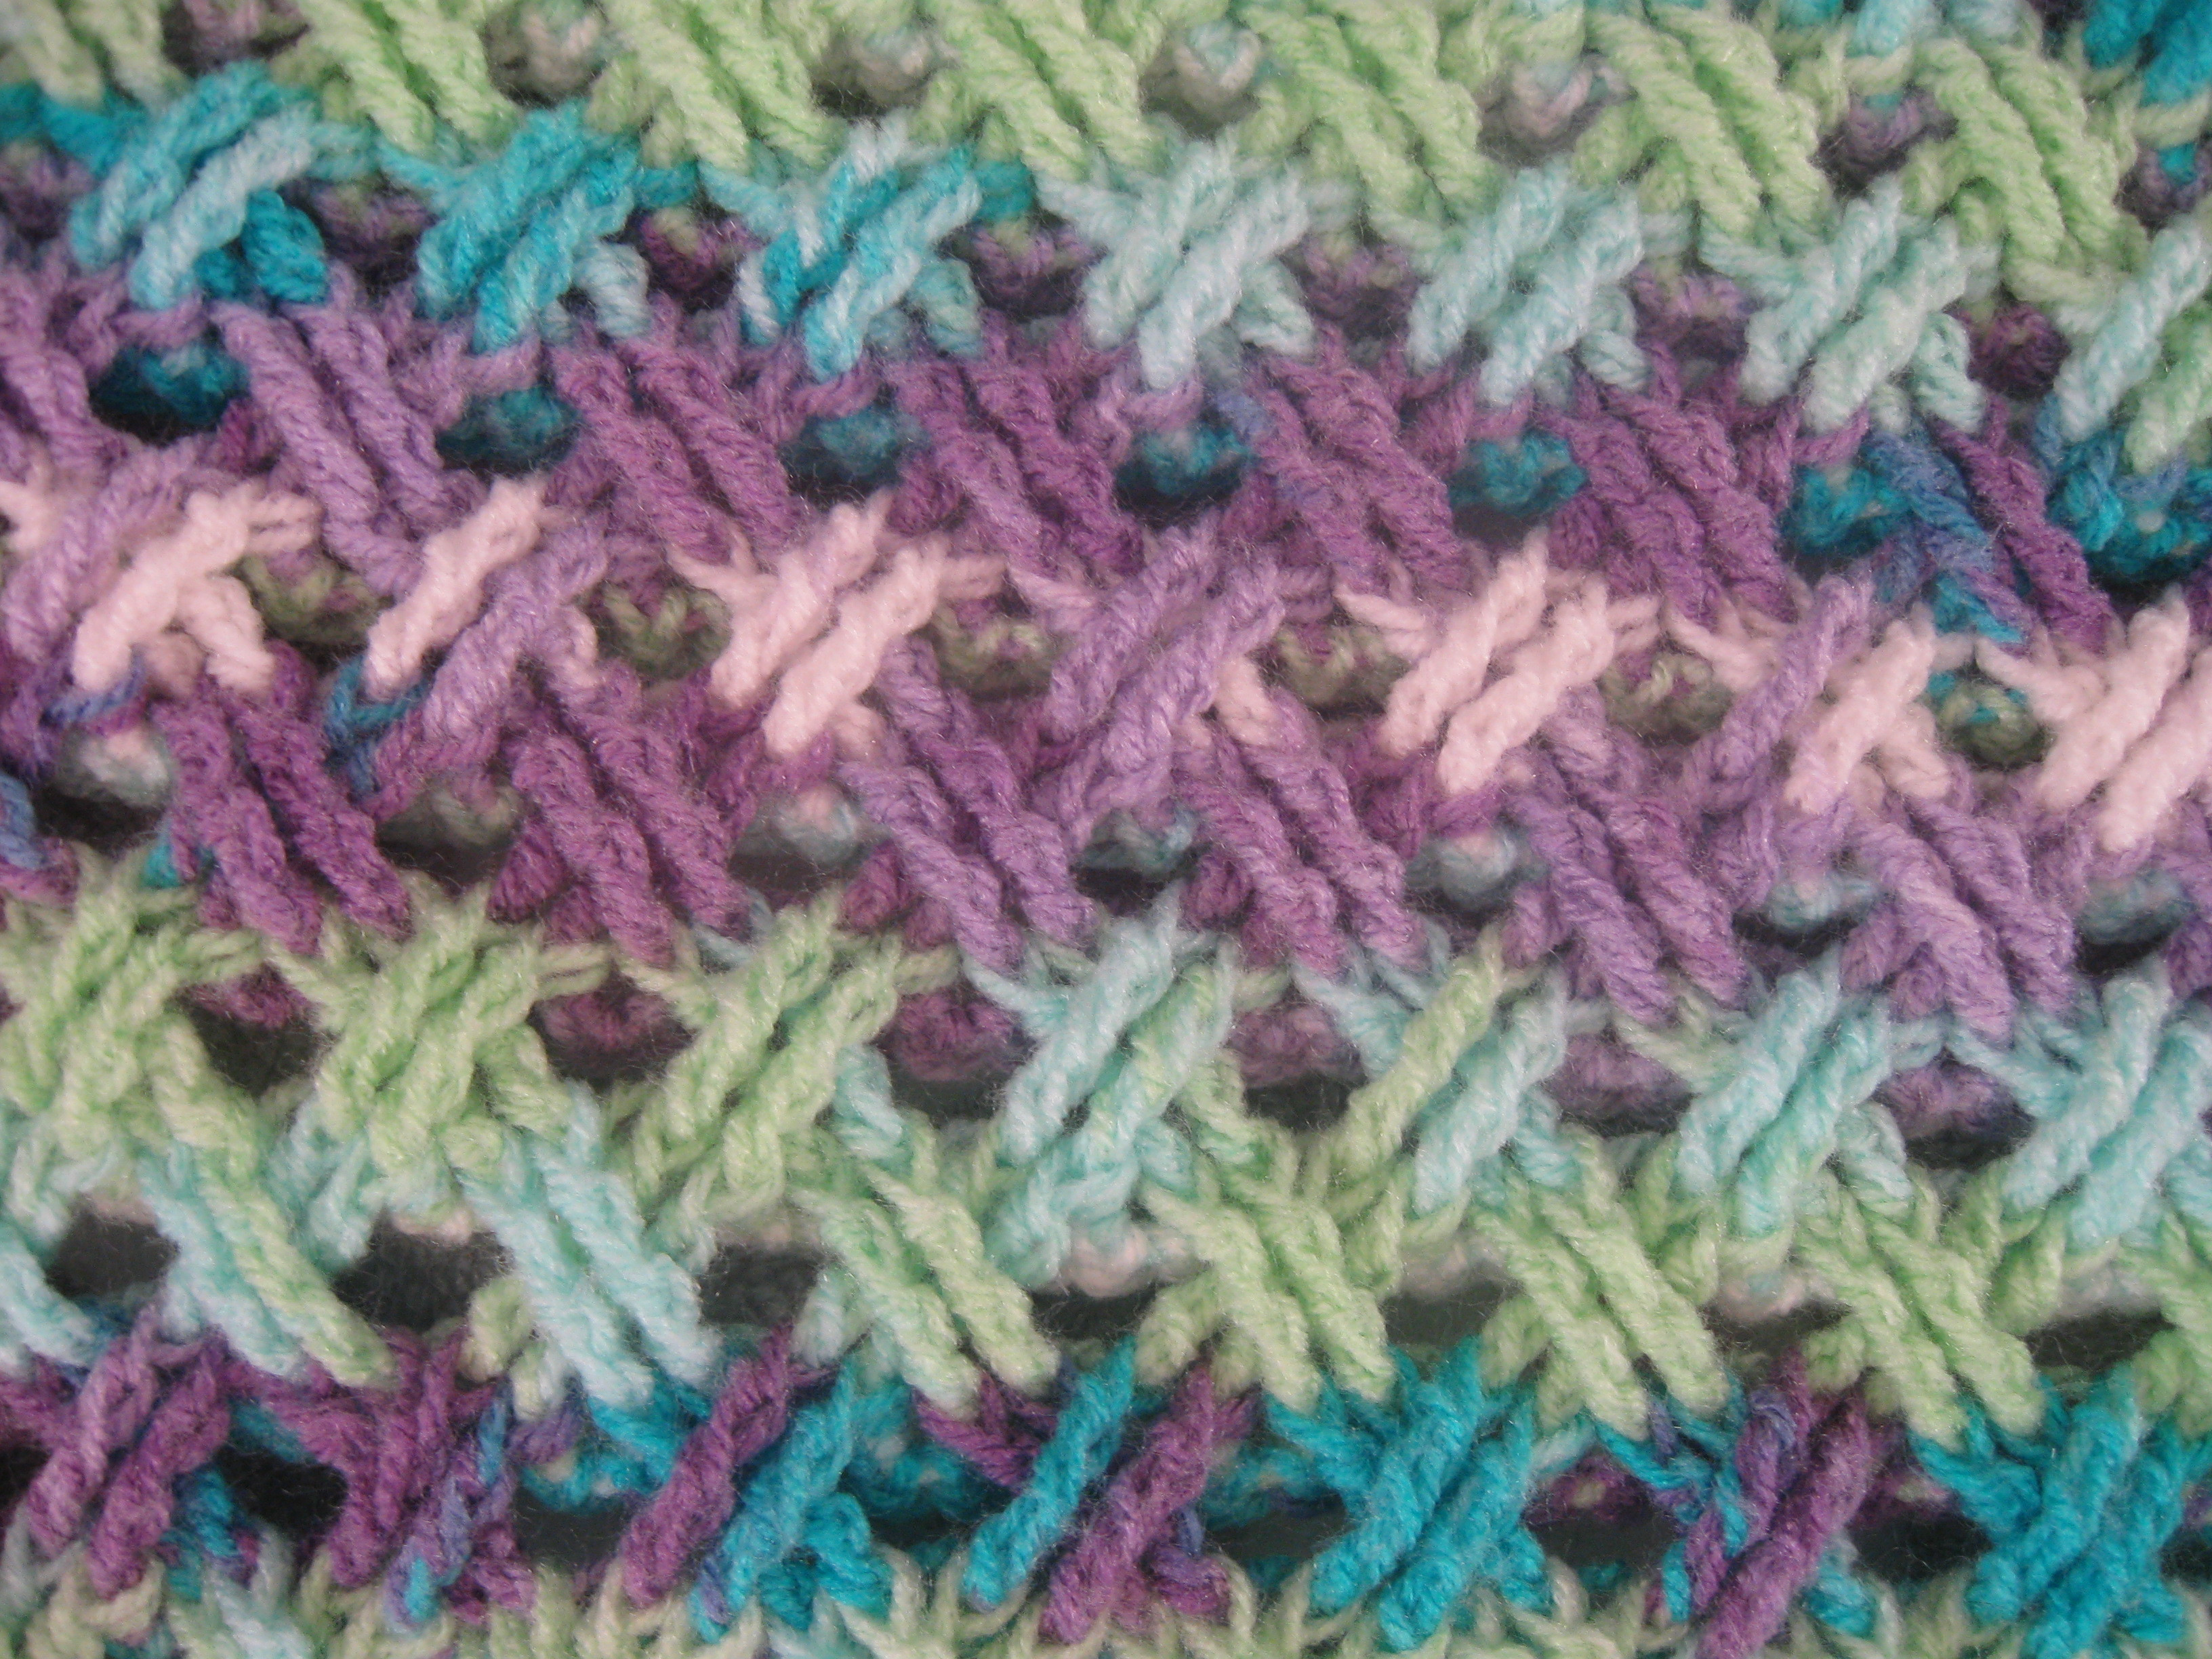 Best Of Diagram Of Crochet Half Double Crochet Crochet Stitches with Pictures Of Marvelous 46 Photos Crochet Stitches with Pictures